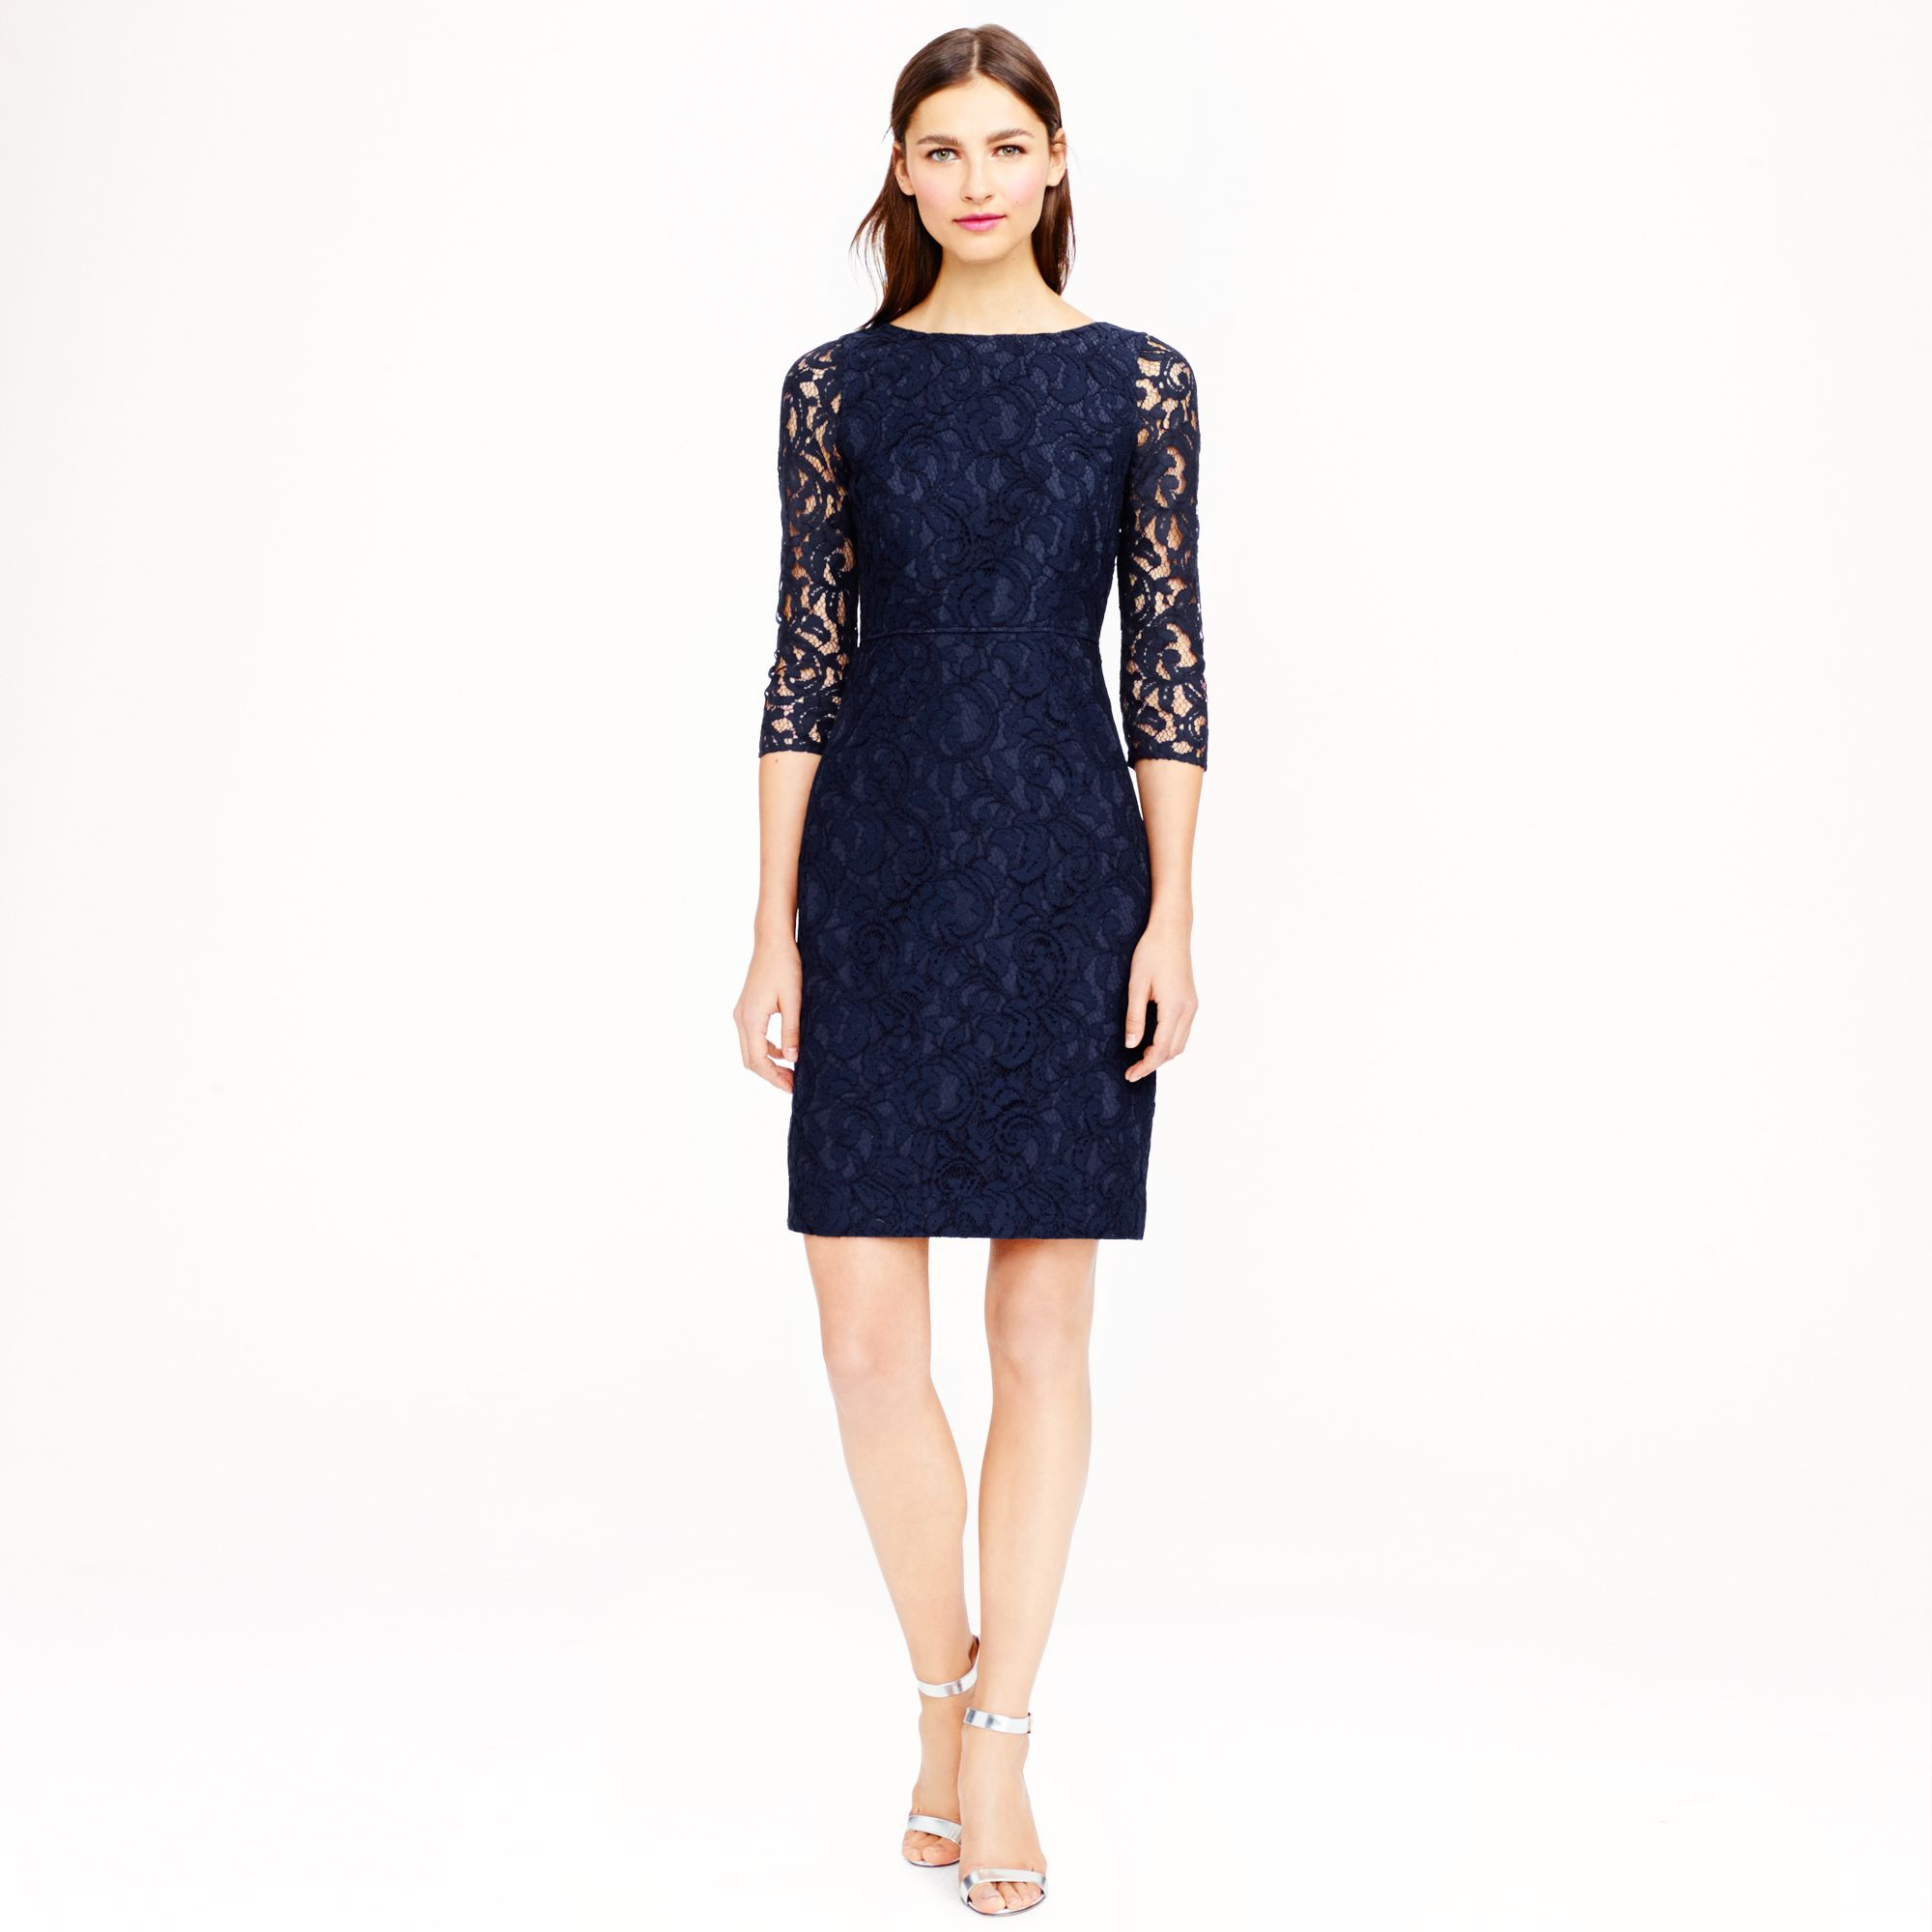 Petite natalia dress in leavers lace in blue navy for Jcrew com